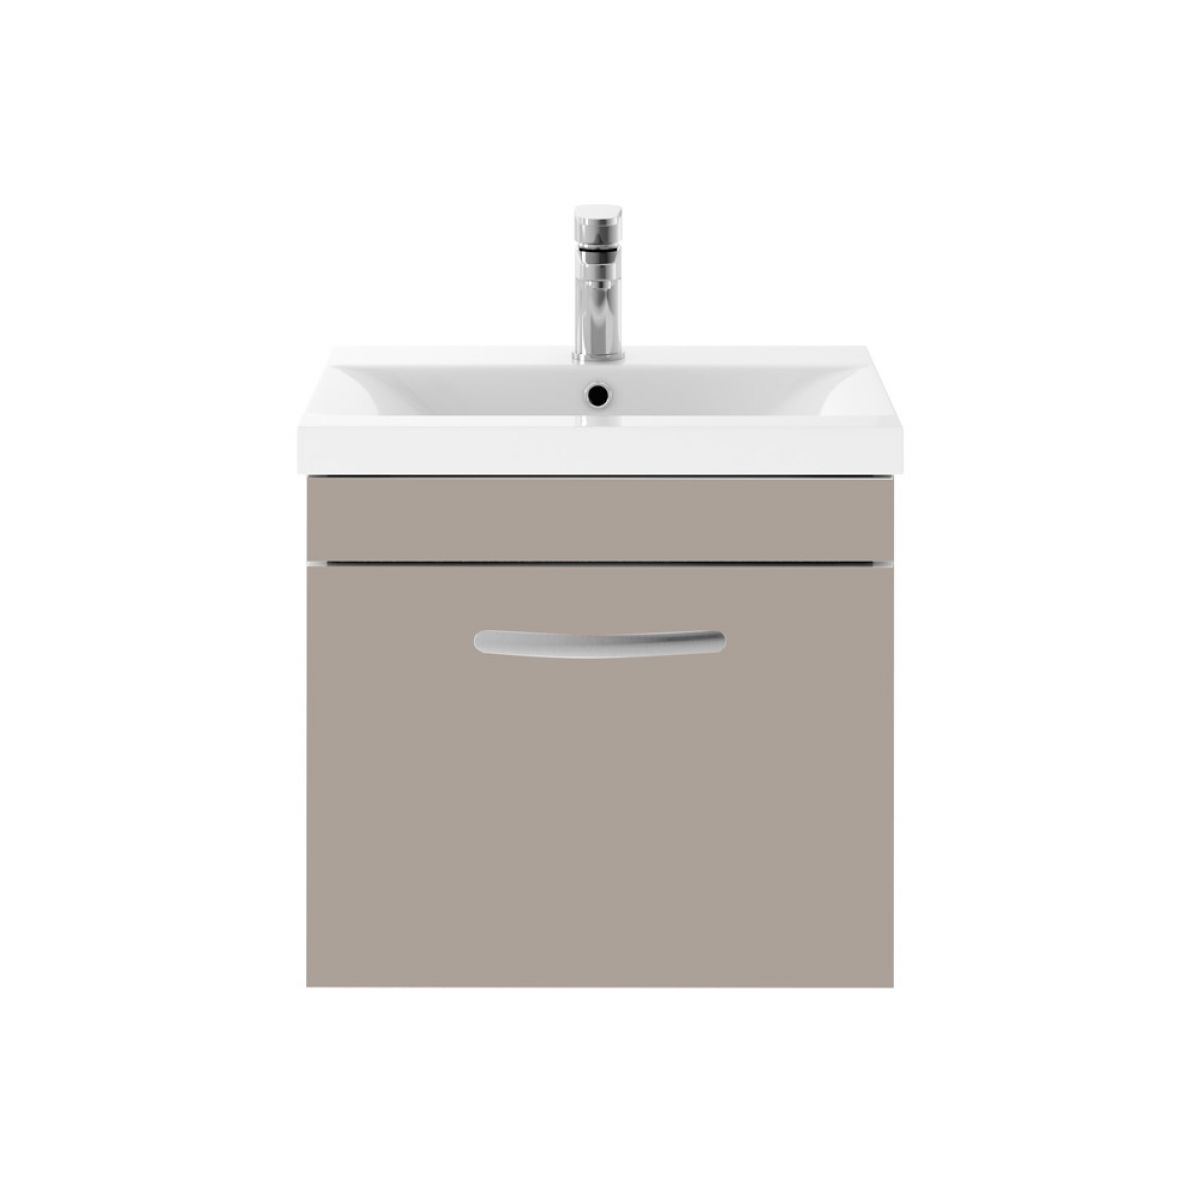 Premier Athena Stone Grey 1 Drawer Wall Hung Vanity Unit 500mm with Mid Edge Basin